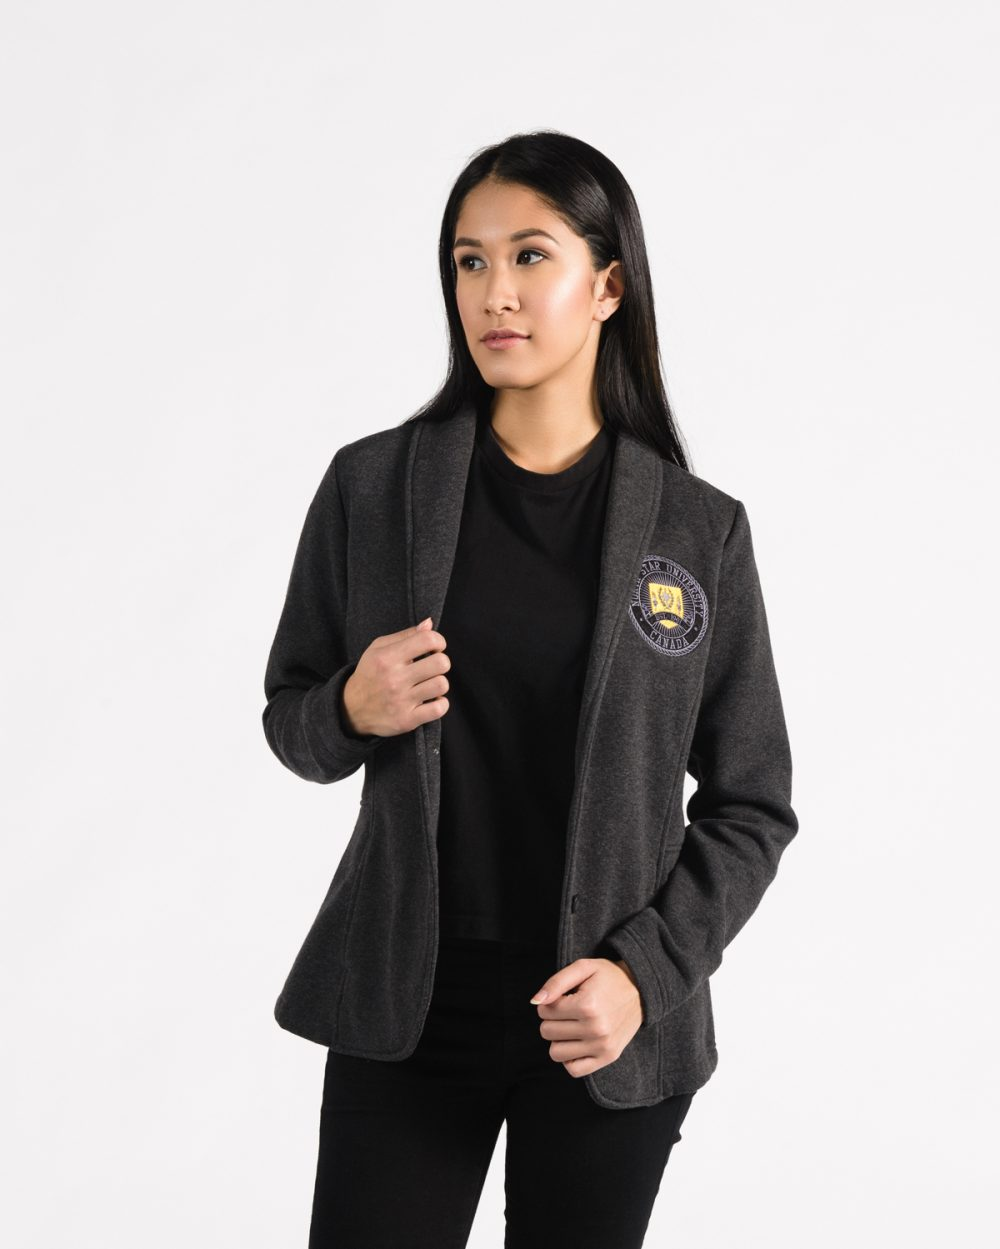 Women's Fitted Blazer 113 in charcoal.